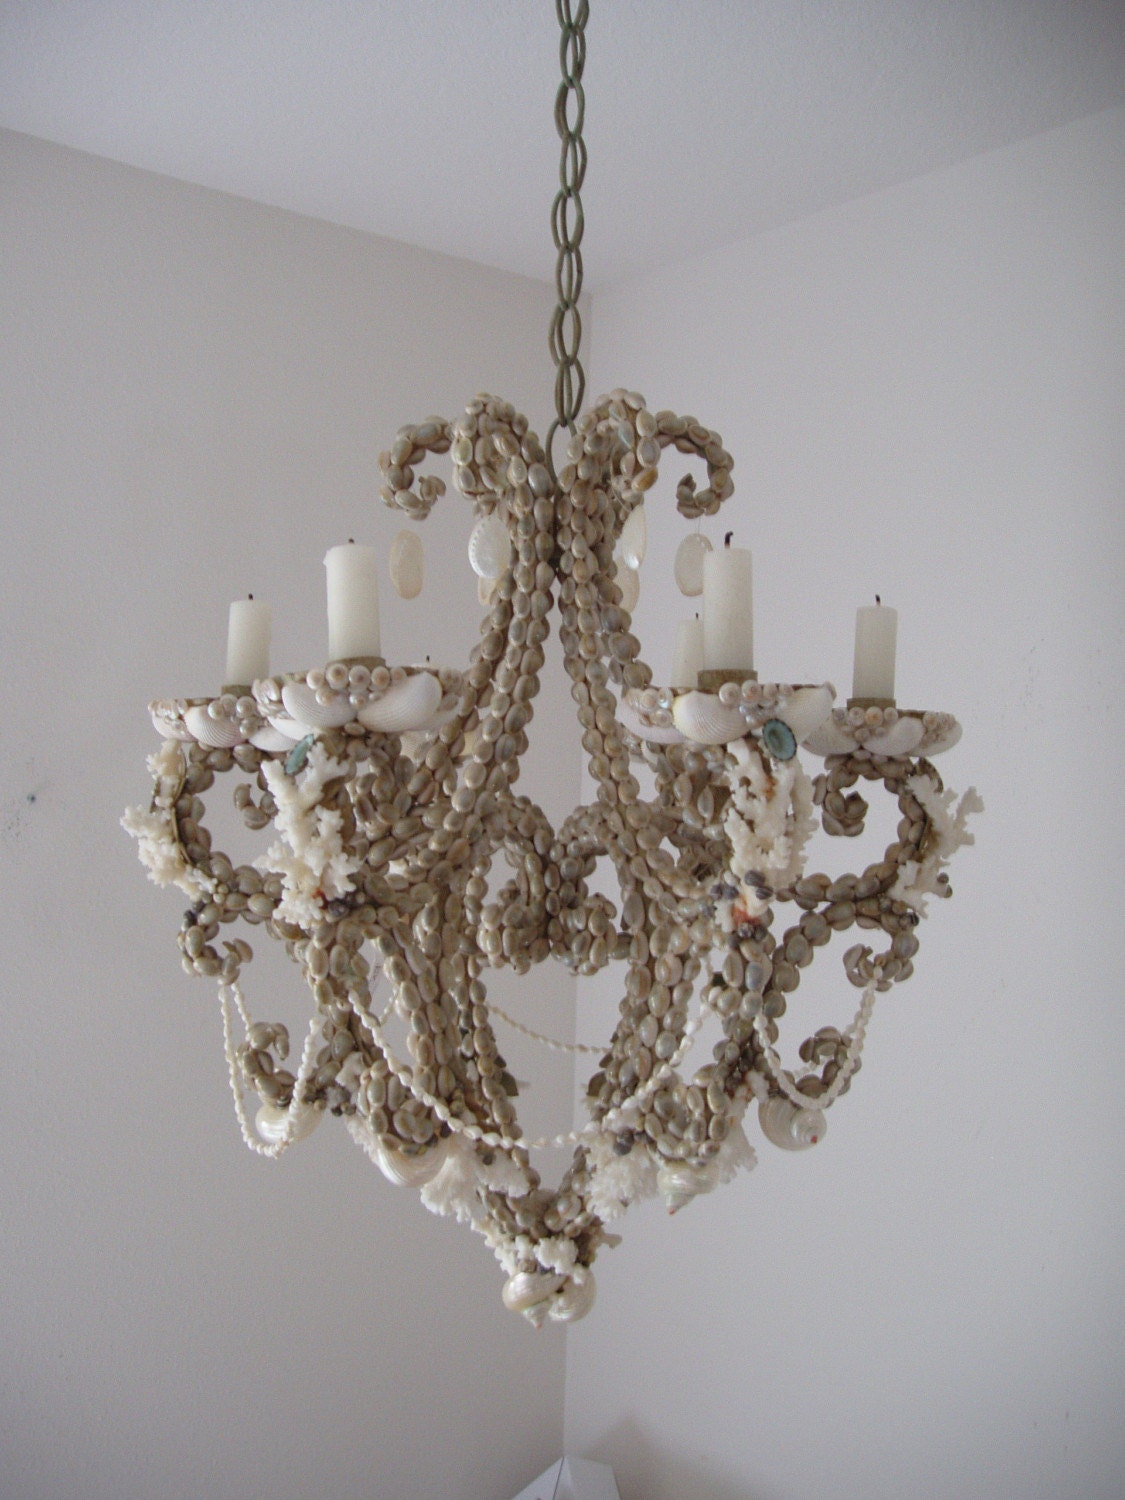 Seashell Chandelier w Candles by SandisShellscapes on Etsy